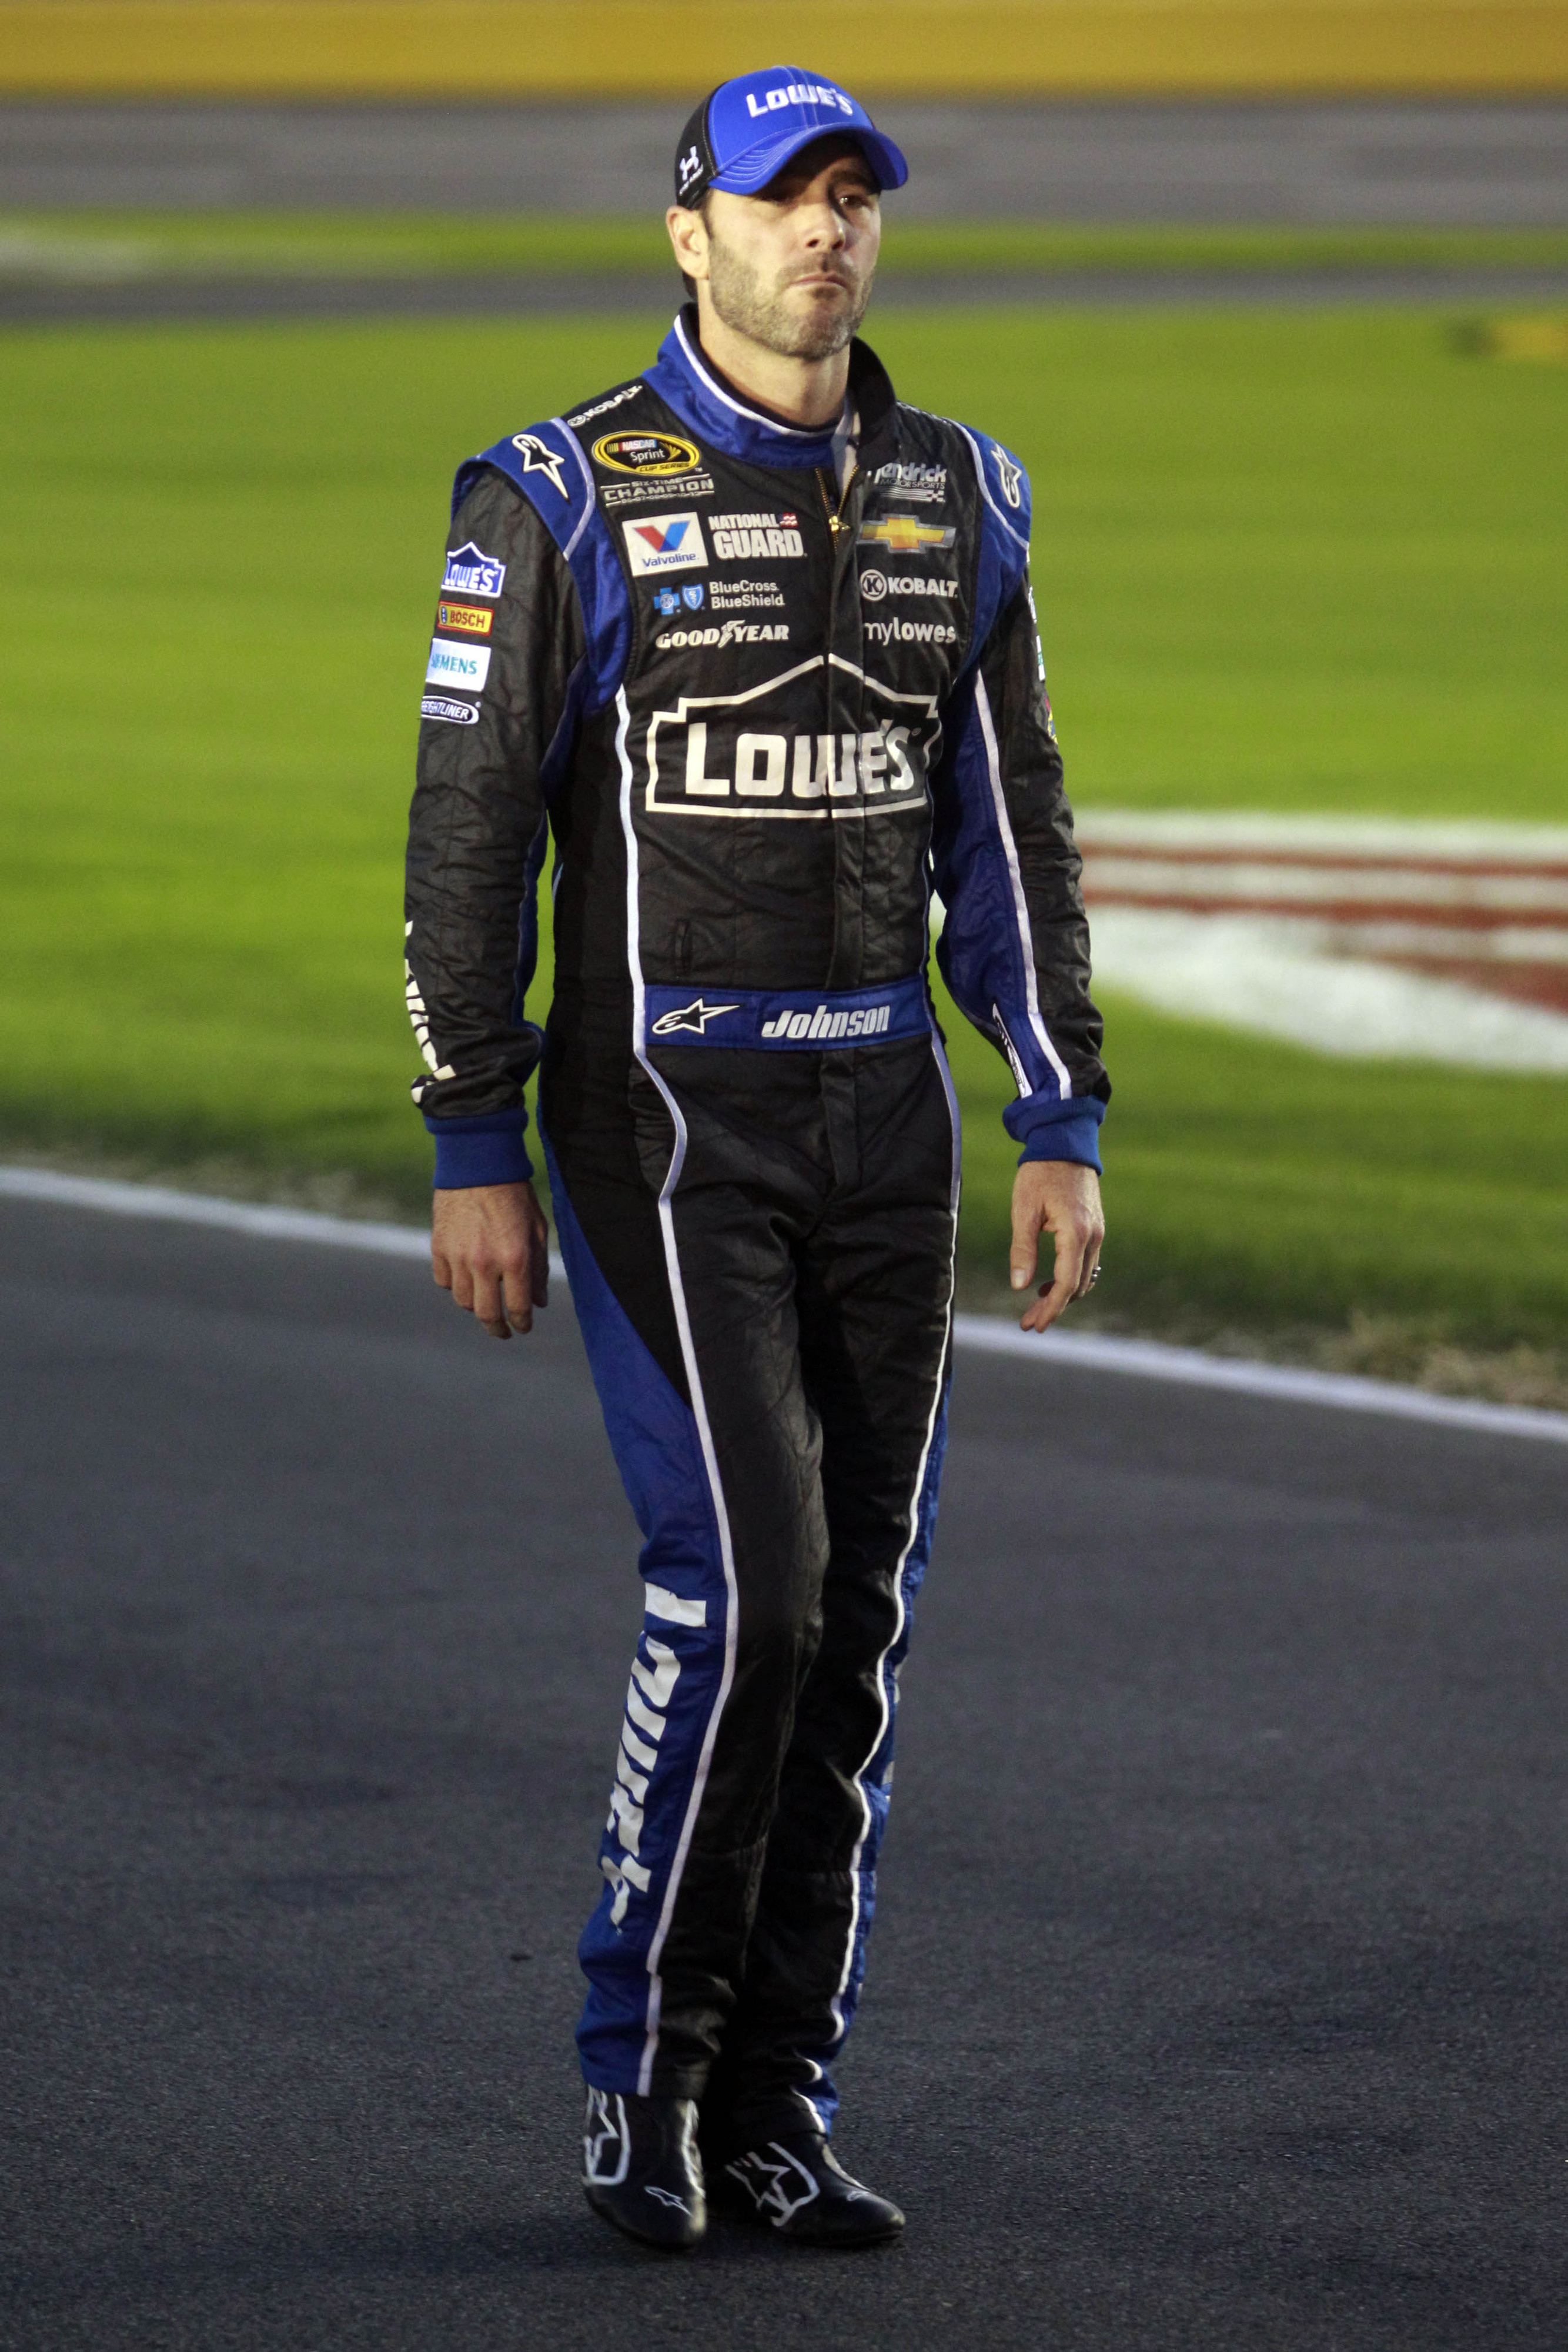 NASCAR Charlotte 2014: Jimmie Johnson: The championship is 'fading'